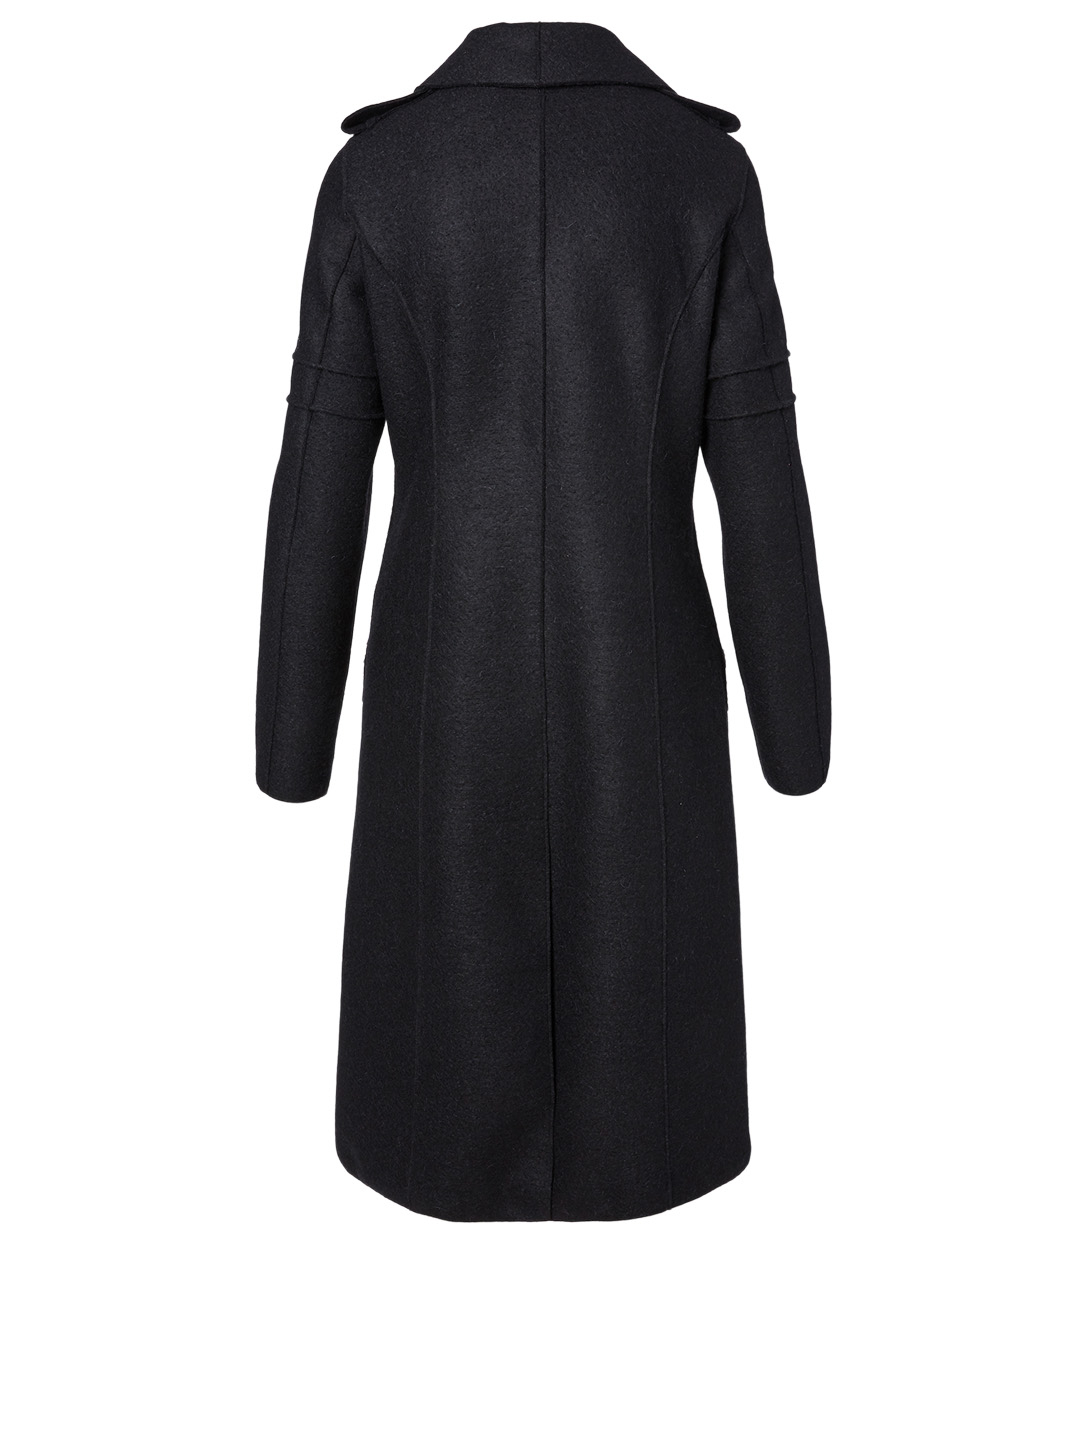 SENTALER Wool Double-Breasted Coat Women's Black